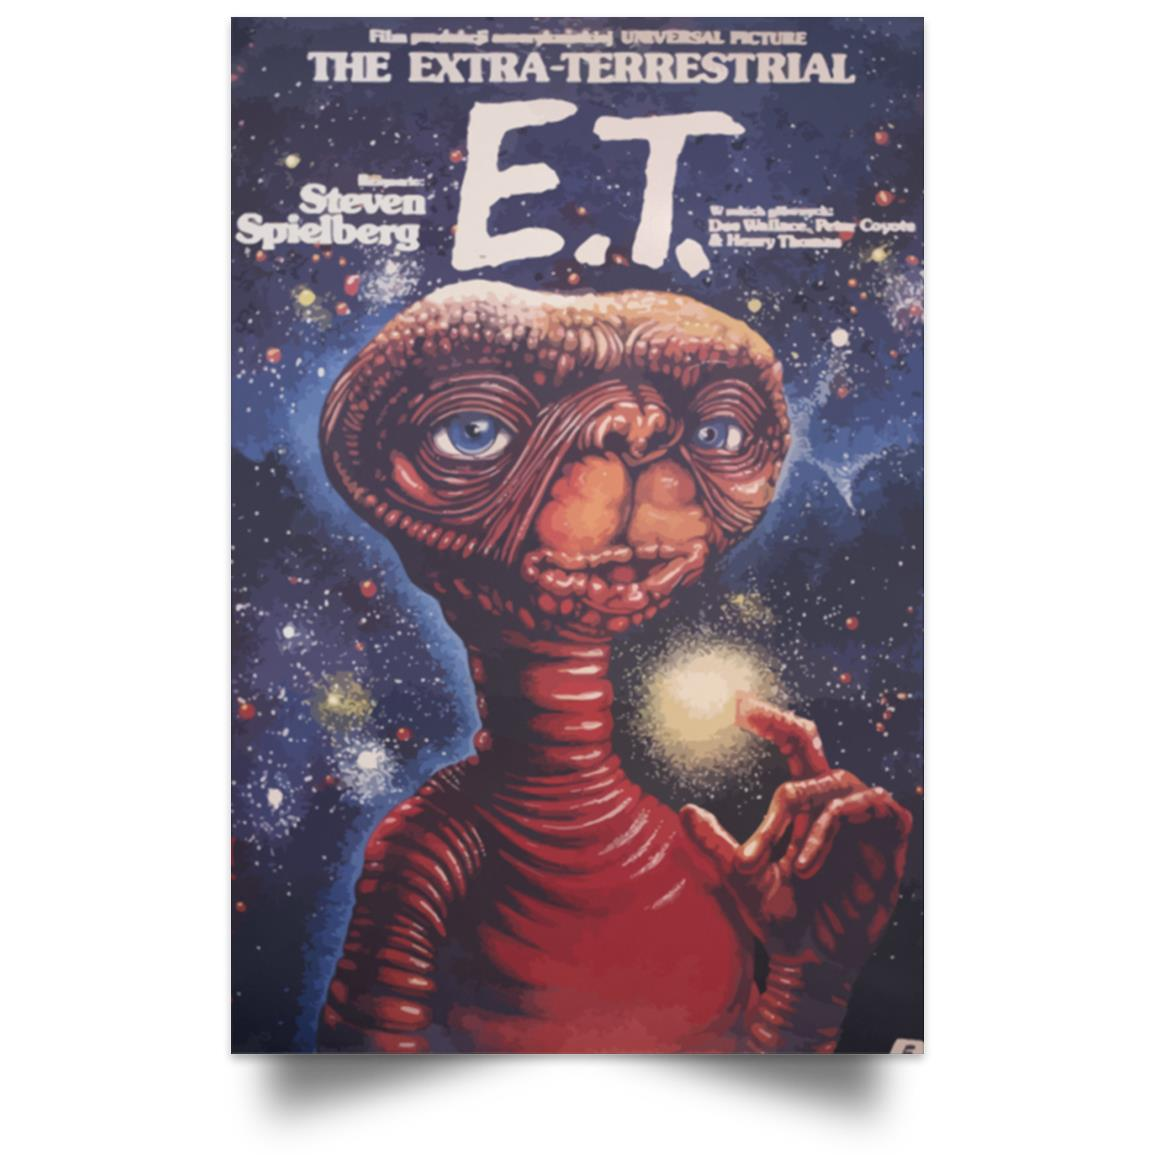 E.T. THE EXTRA-TERRESTRIAL POSTER 1